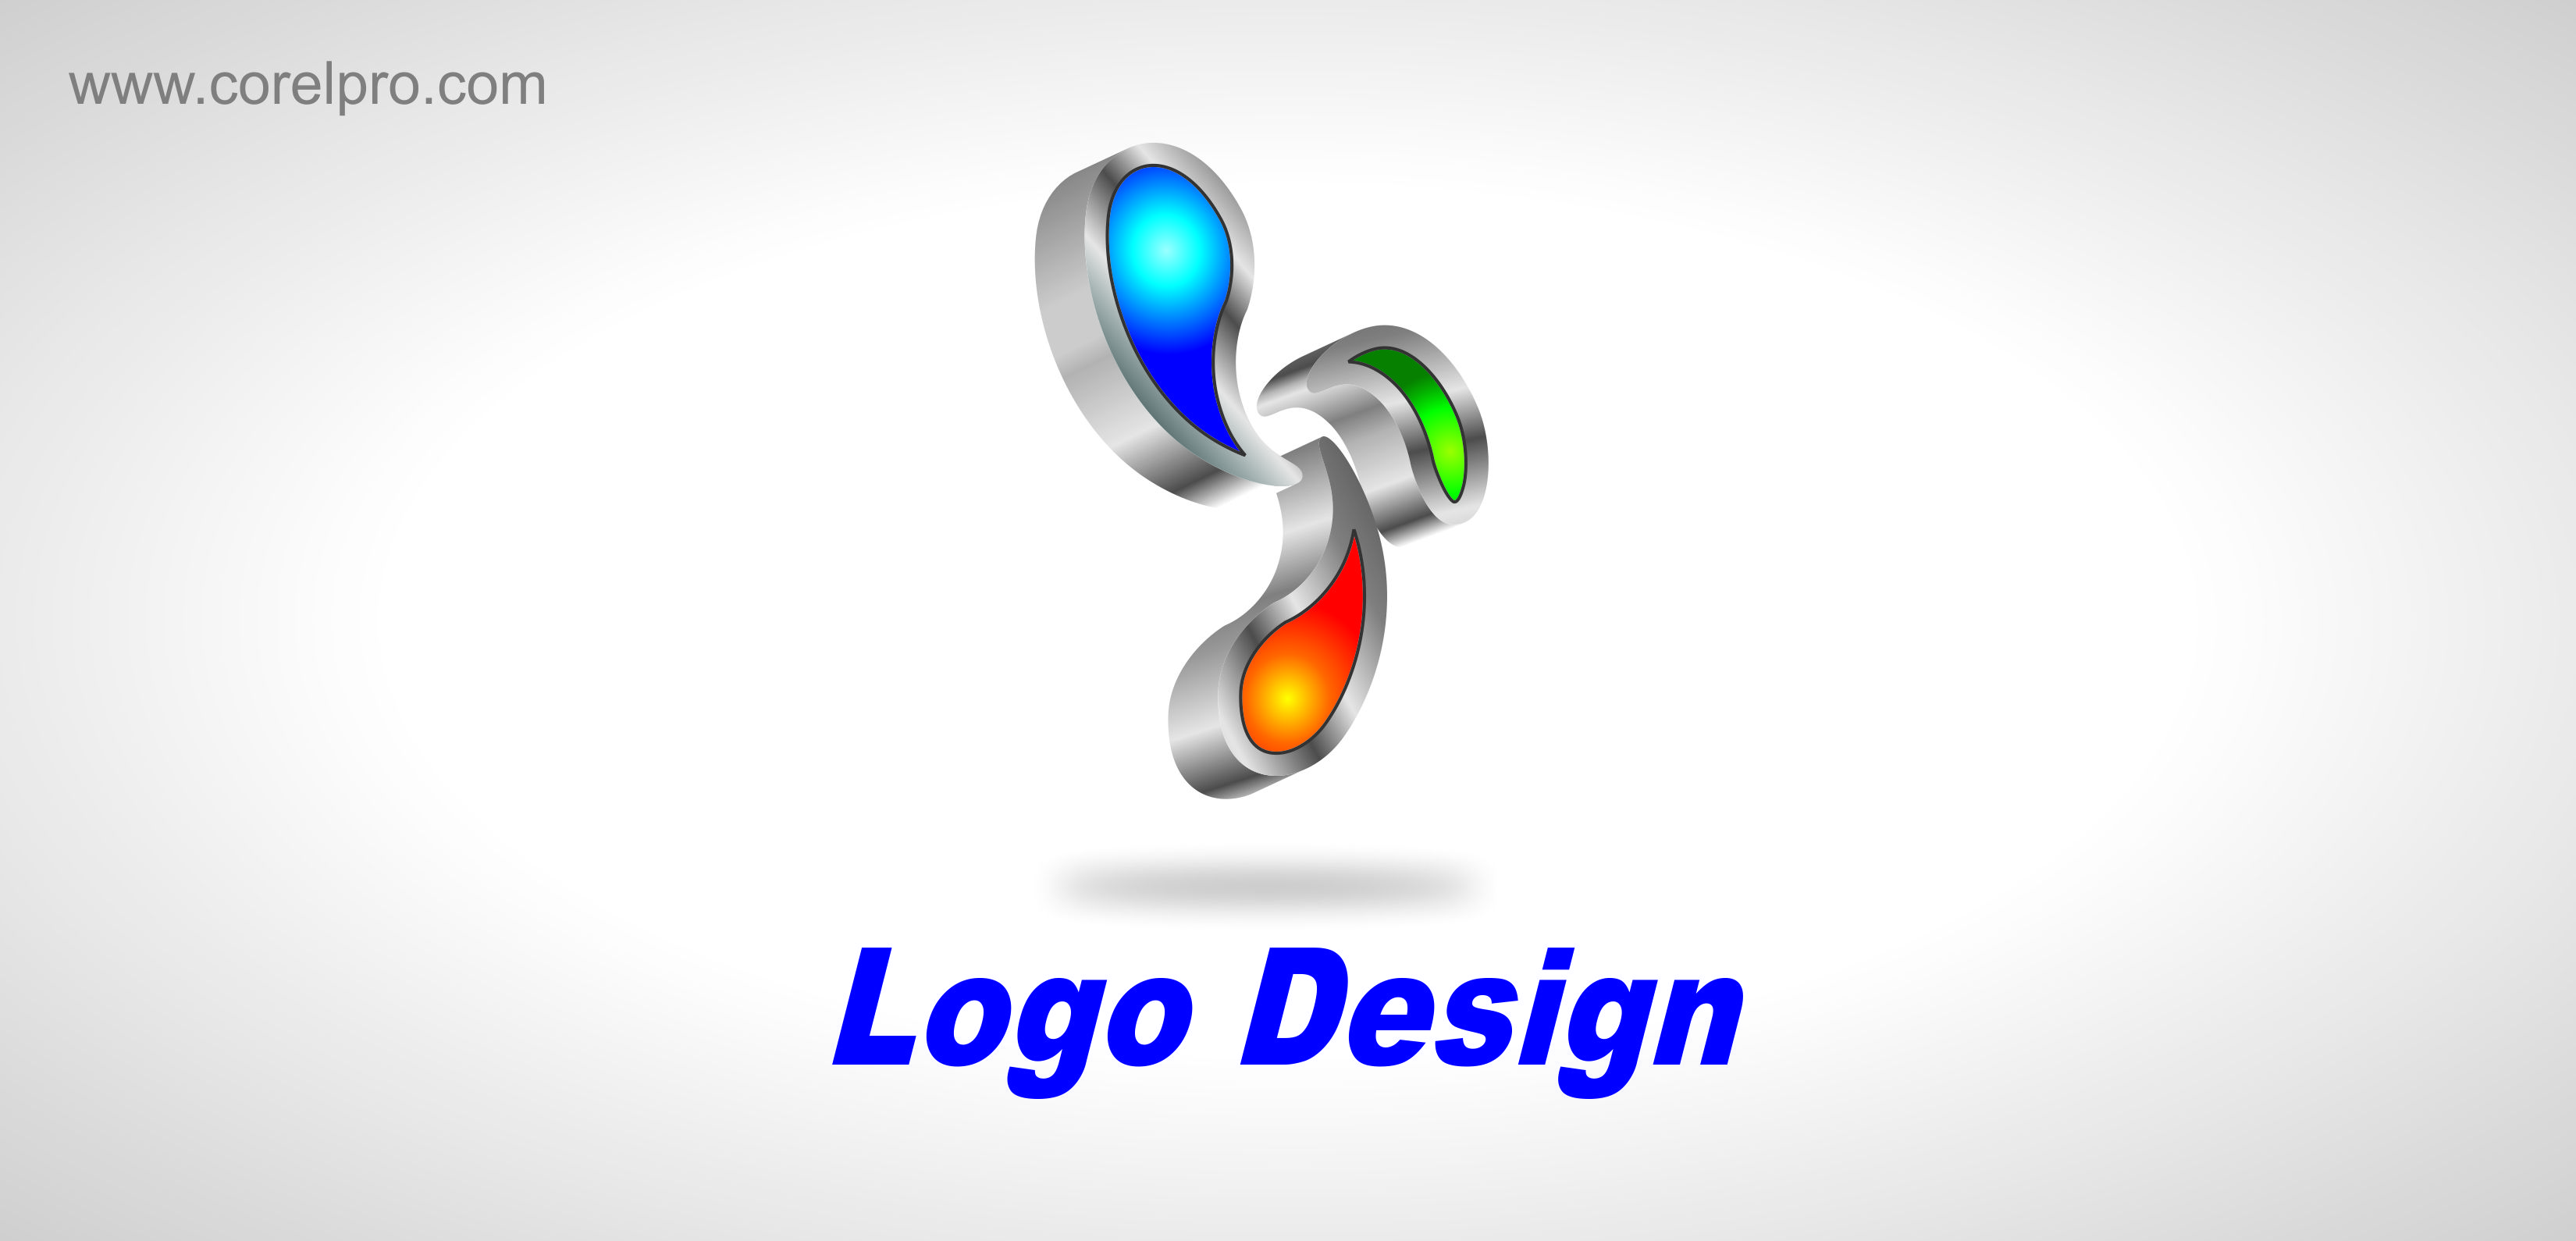 Logo Design Ideas best logo design ideas 30 Best Logo Design Ideas 39 In Coreldraw Tutorial With Free Source File Download Logo Design Ideas Video Tutorials For How To Make Logo Elements